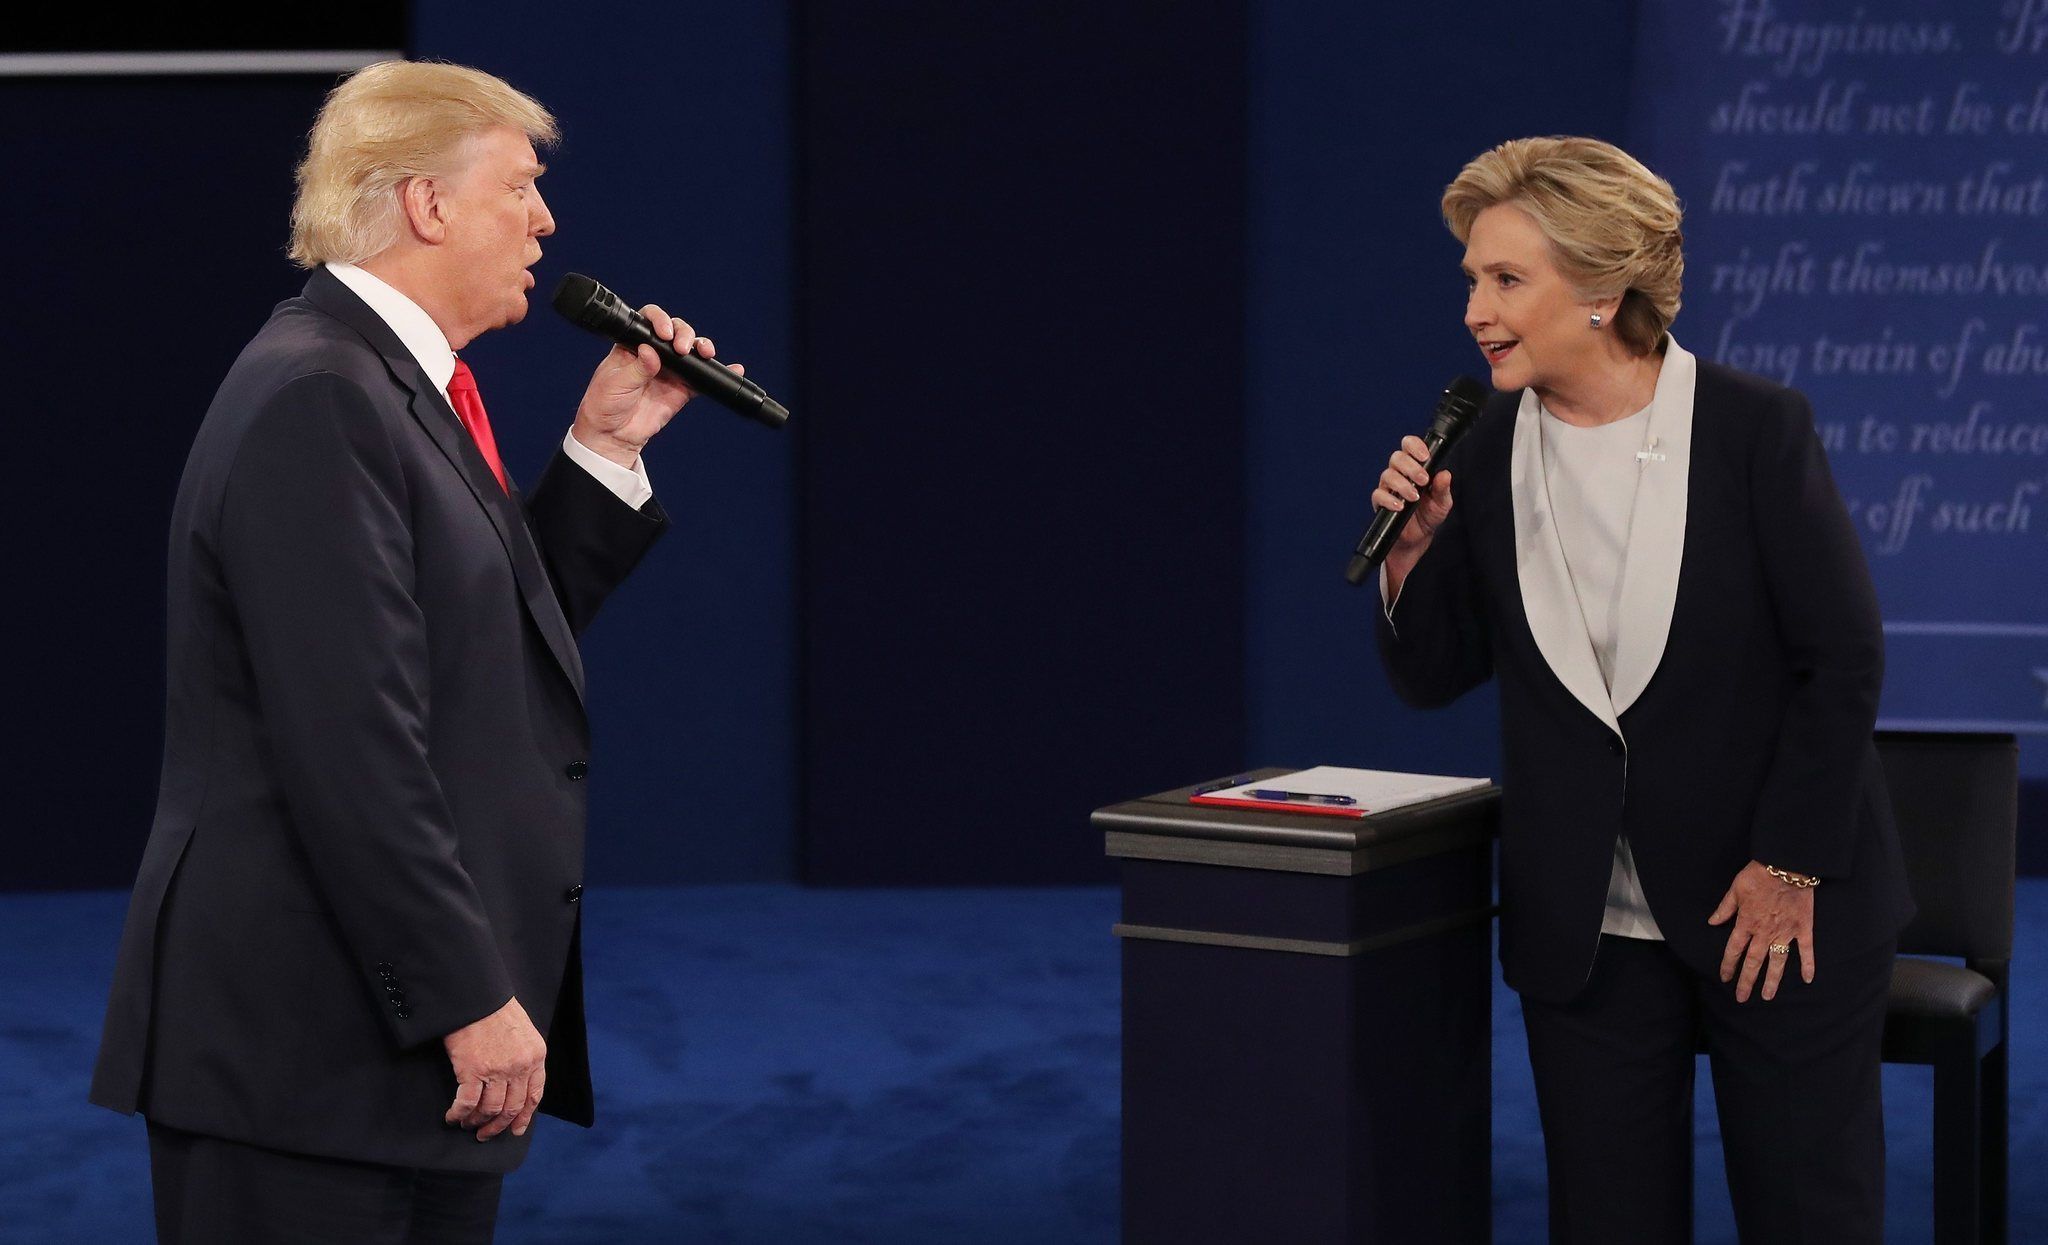 Donald Trump and Hillary Clinton taking part in the second debate at Washington University in St. Louis on Oct. 9, 2016.